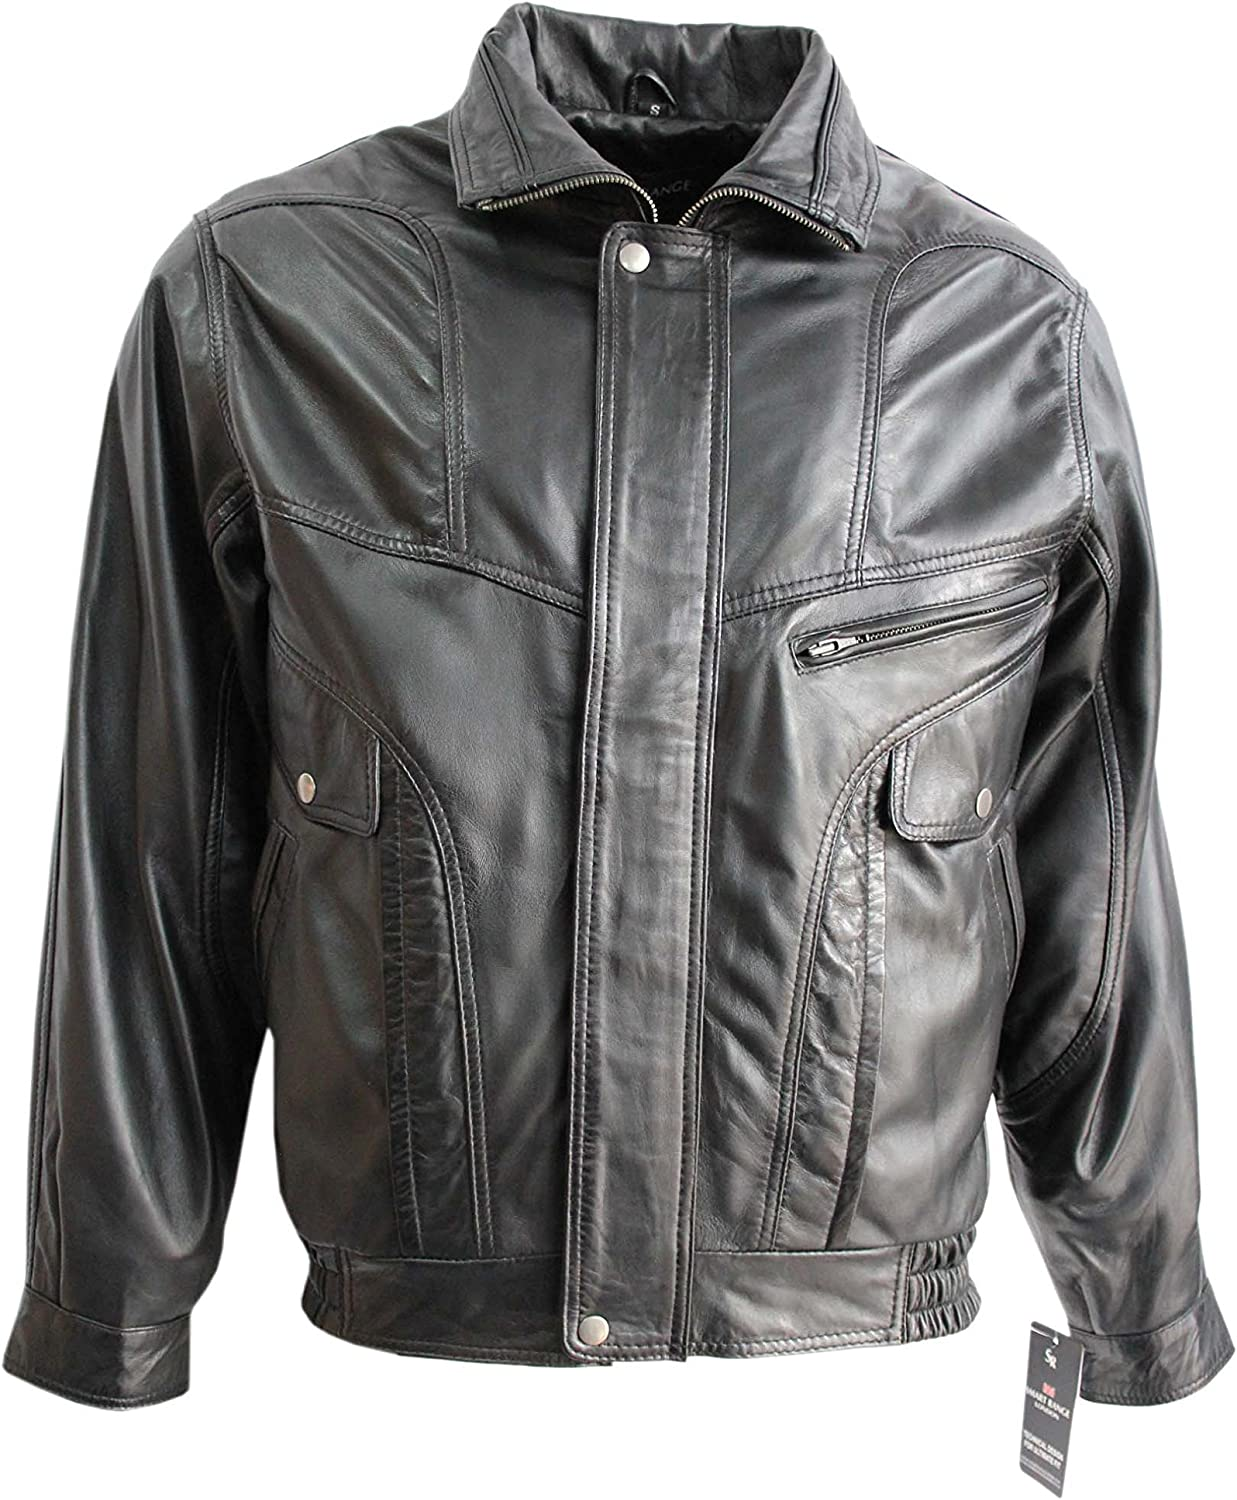 9e277963213 New 8553 Washed Biker Style Vintage Soft Nappa Real Leather Jacket Black  Men's nrkbbn3191-Sporting goods